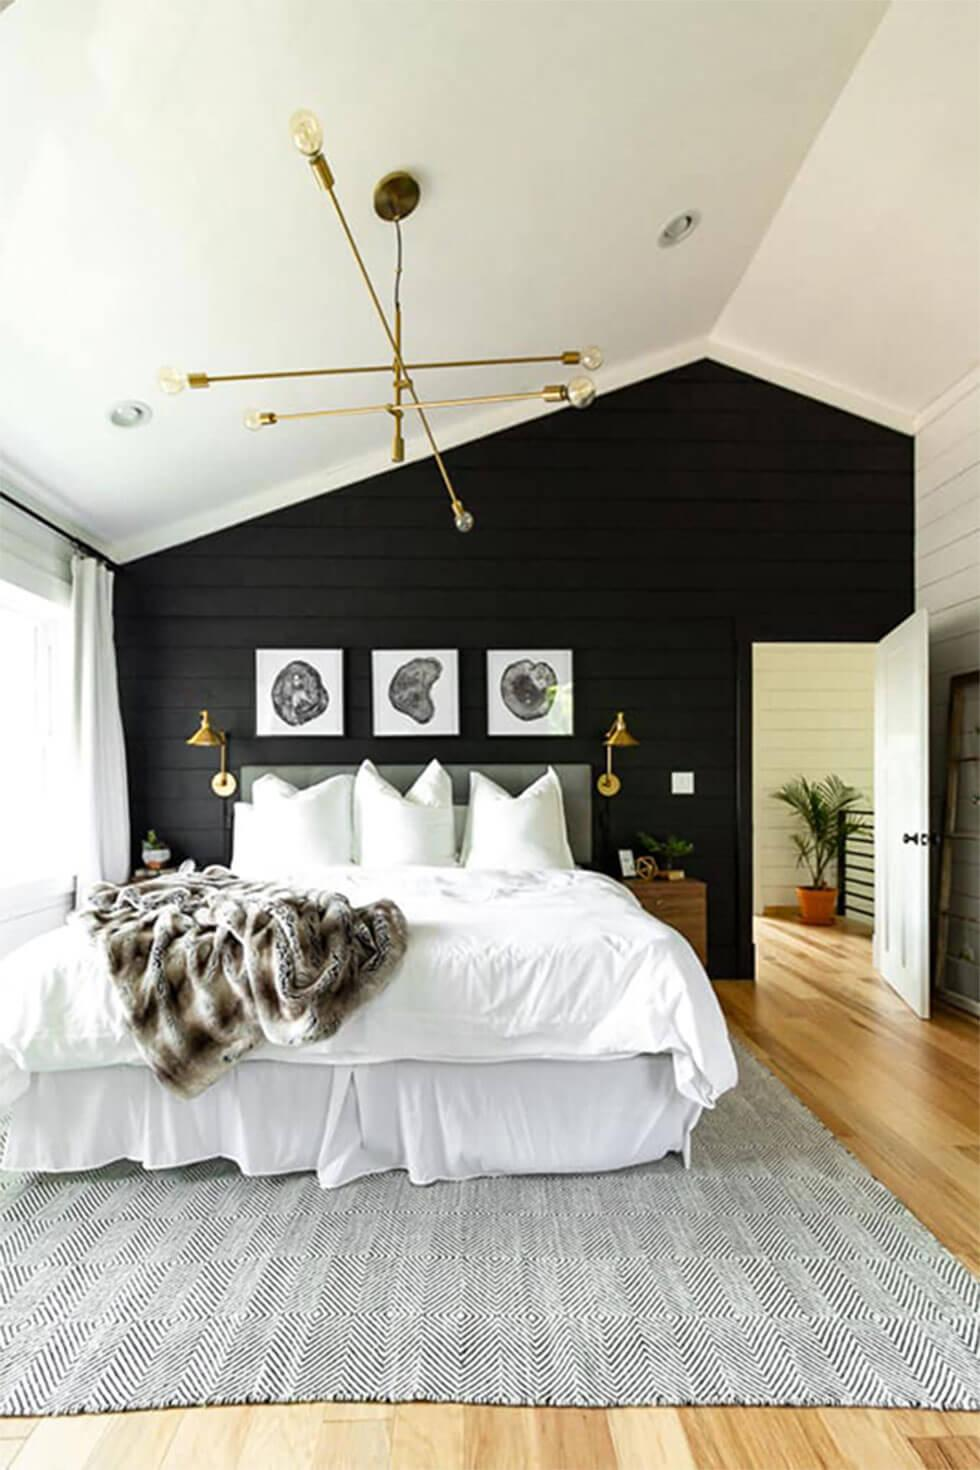 Modern black and white bedroom with rustic touches, a gallery wall, wood floors and a brass chandelier